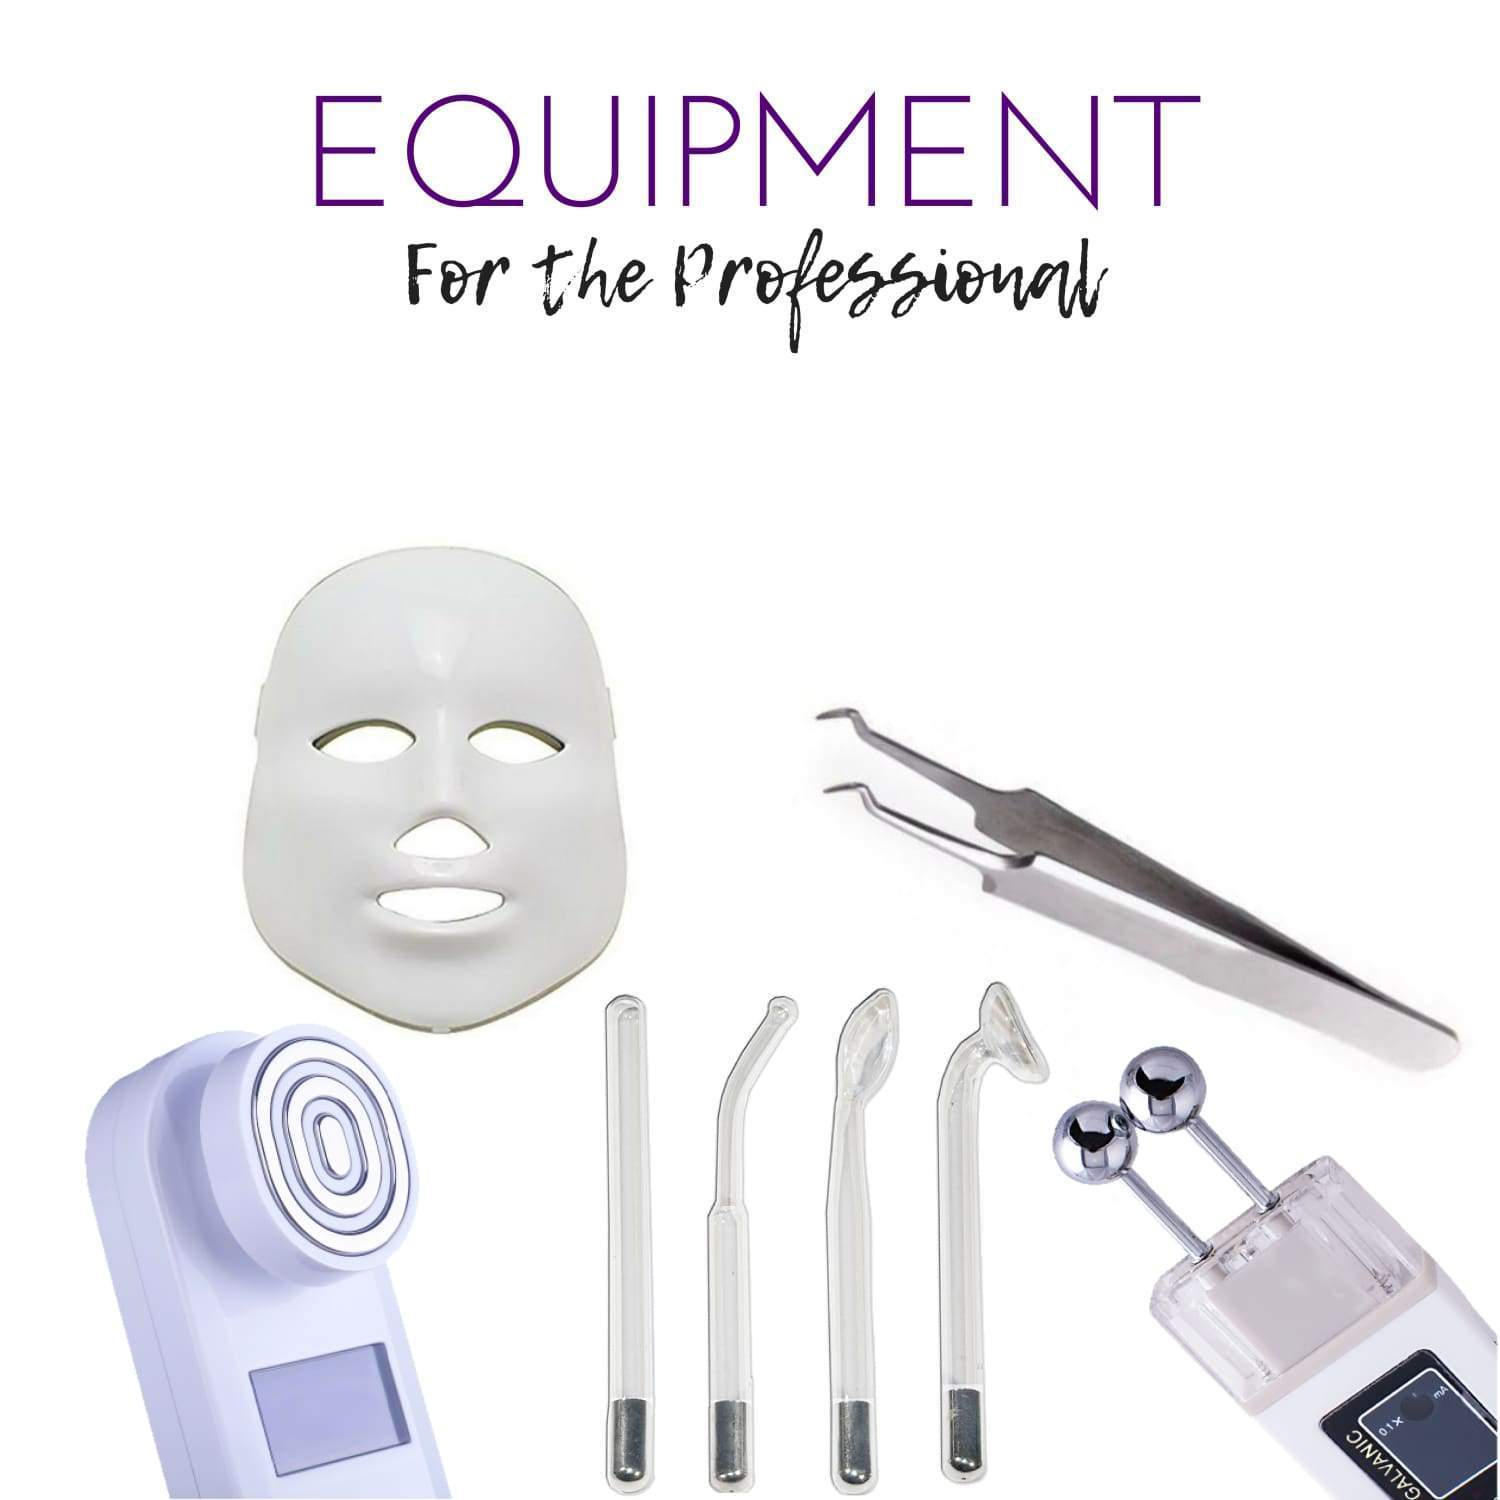 Esthetician supplies: masks, jade roller, multi-tool, skin scrubber, high-frequency machine, tweezers, manicure tool set, ice roller, EMS machine, electrode replacements, flex mitt, galvanic machine, massage cups, tweezer comb, MySkinBuddy tool